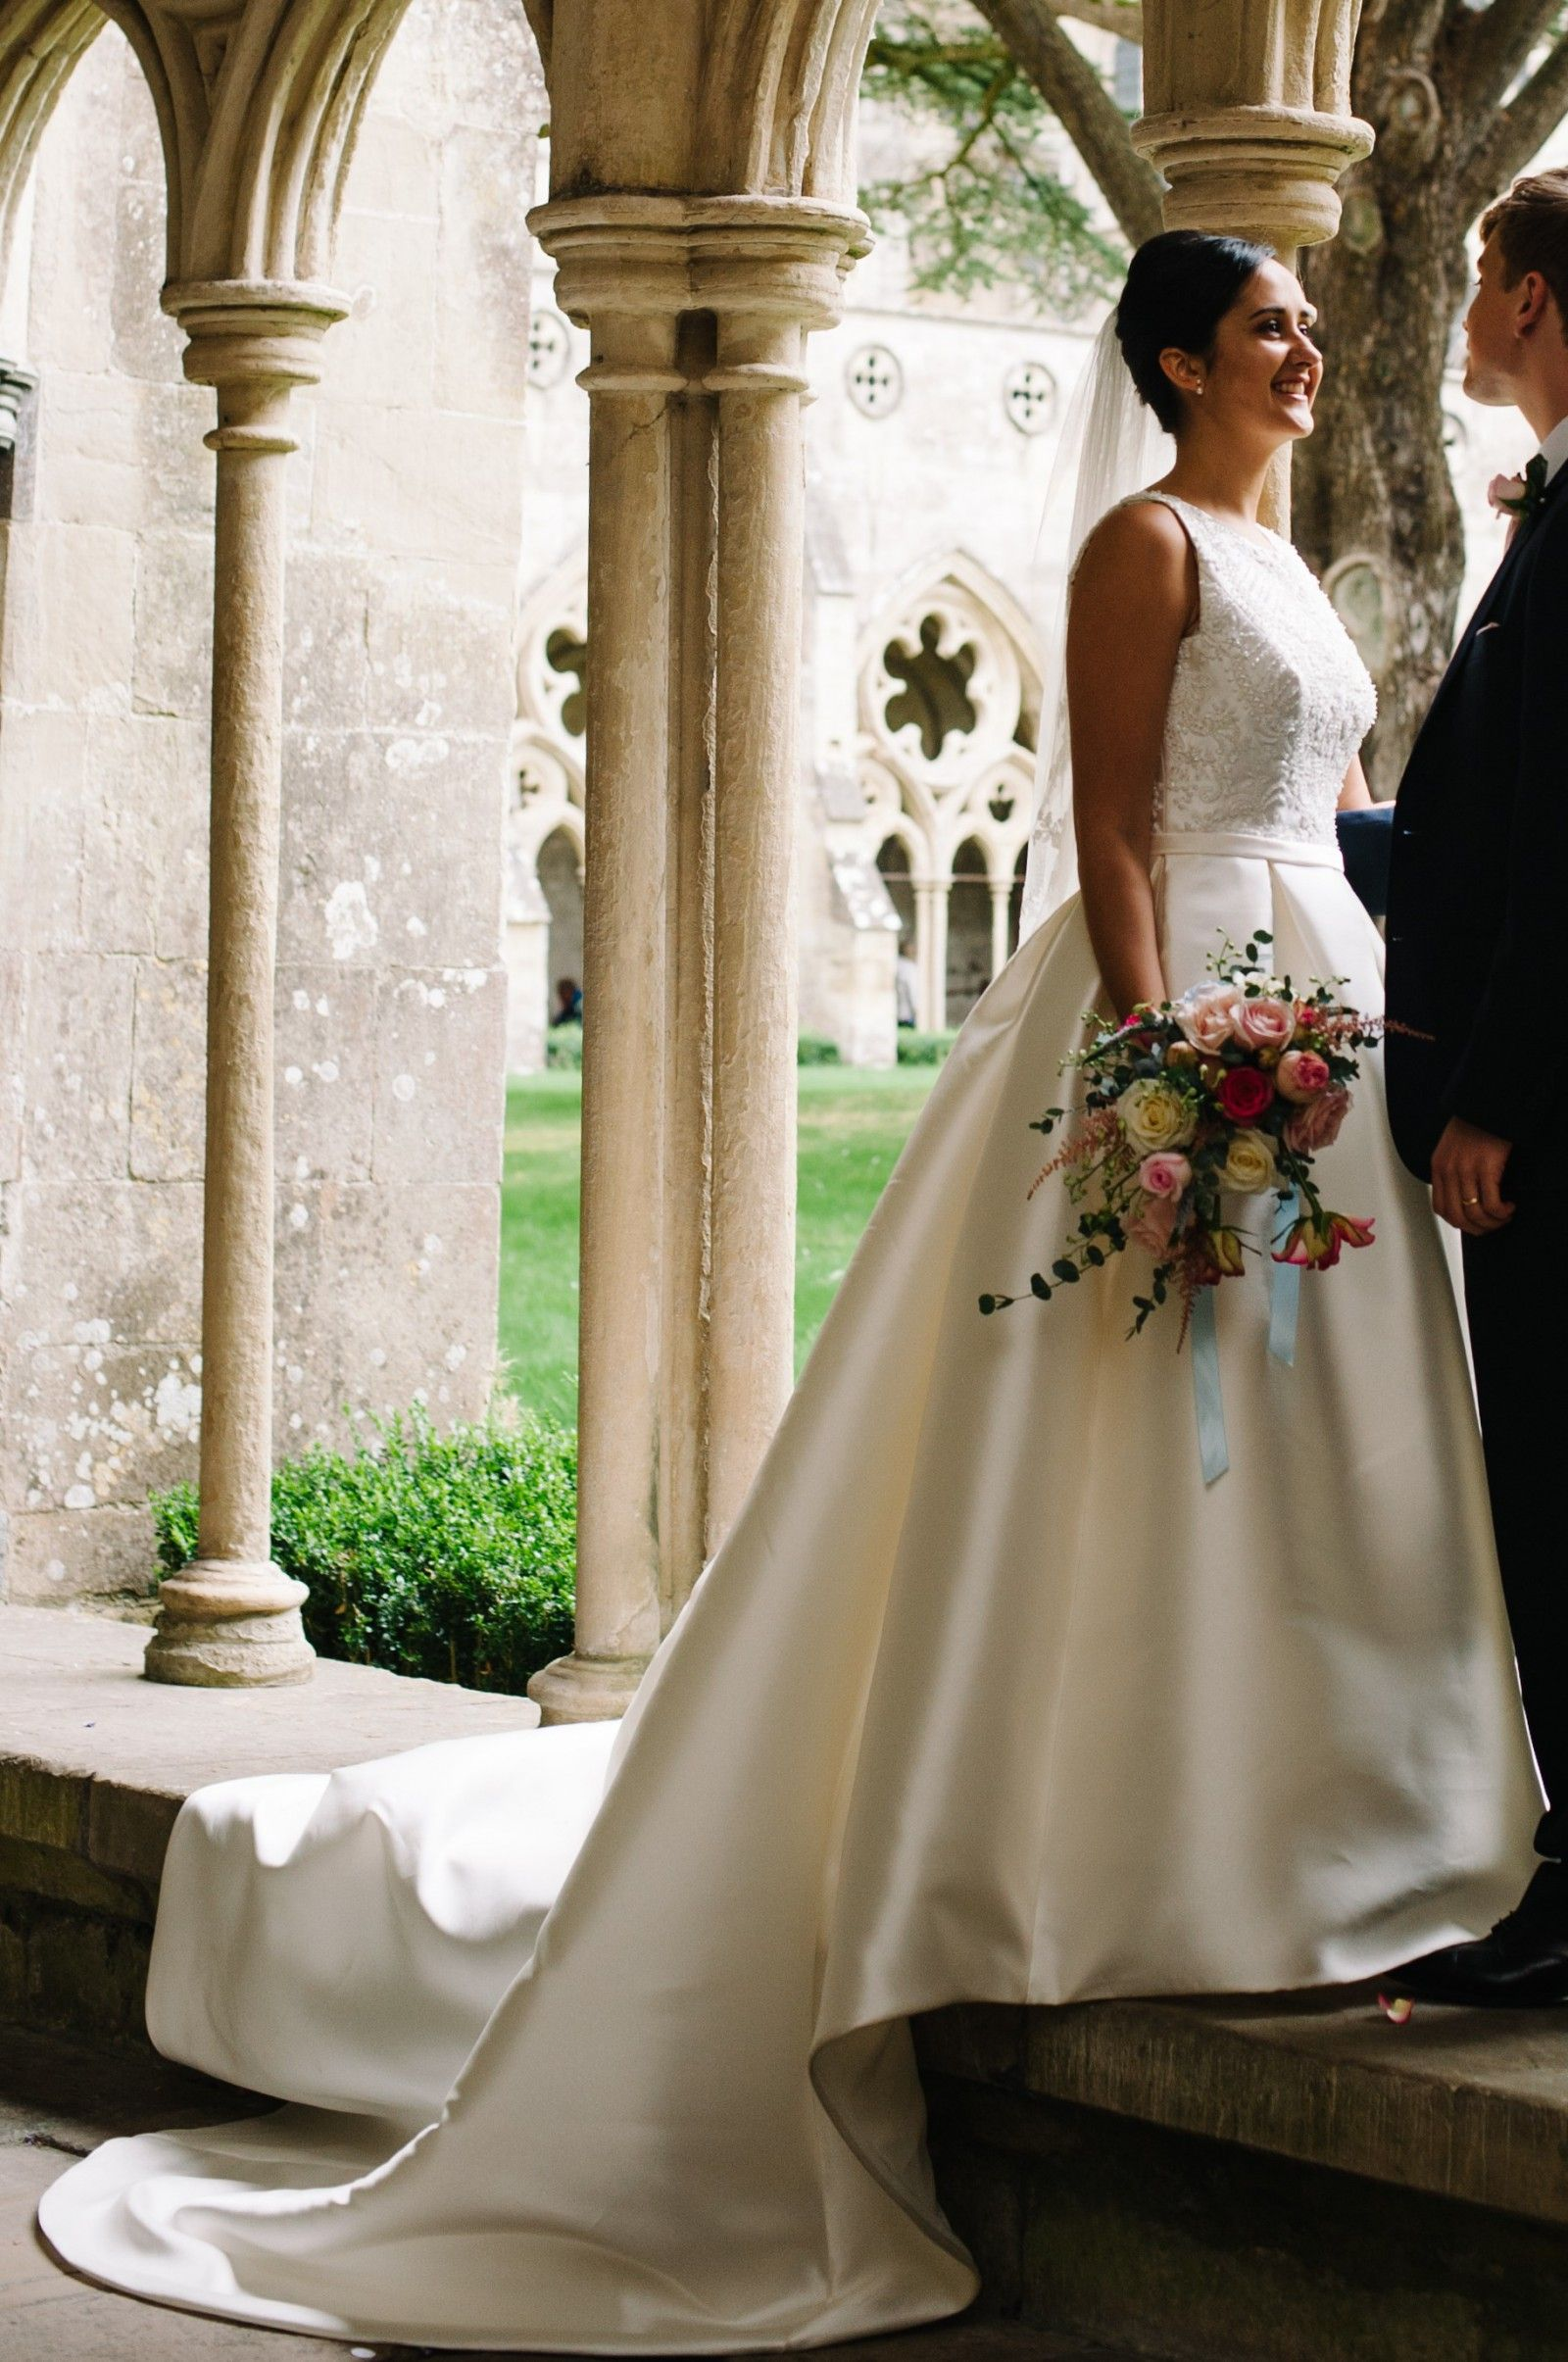 Wedding dress dry cleaning near me  Rosa Clara Arcilla Wedding Dress for sale Dry cleaned like new